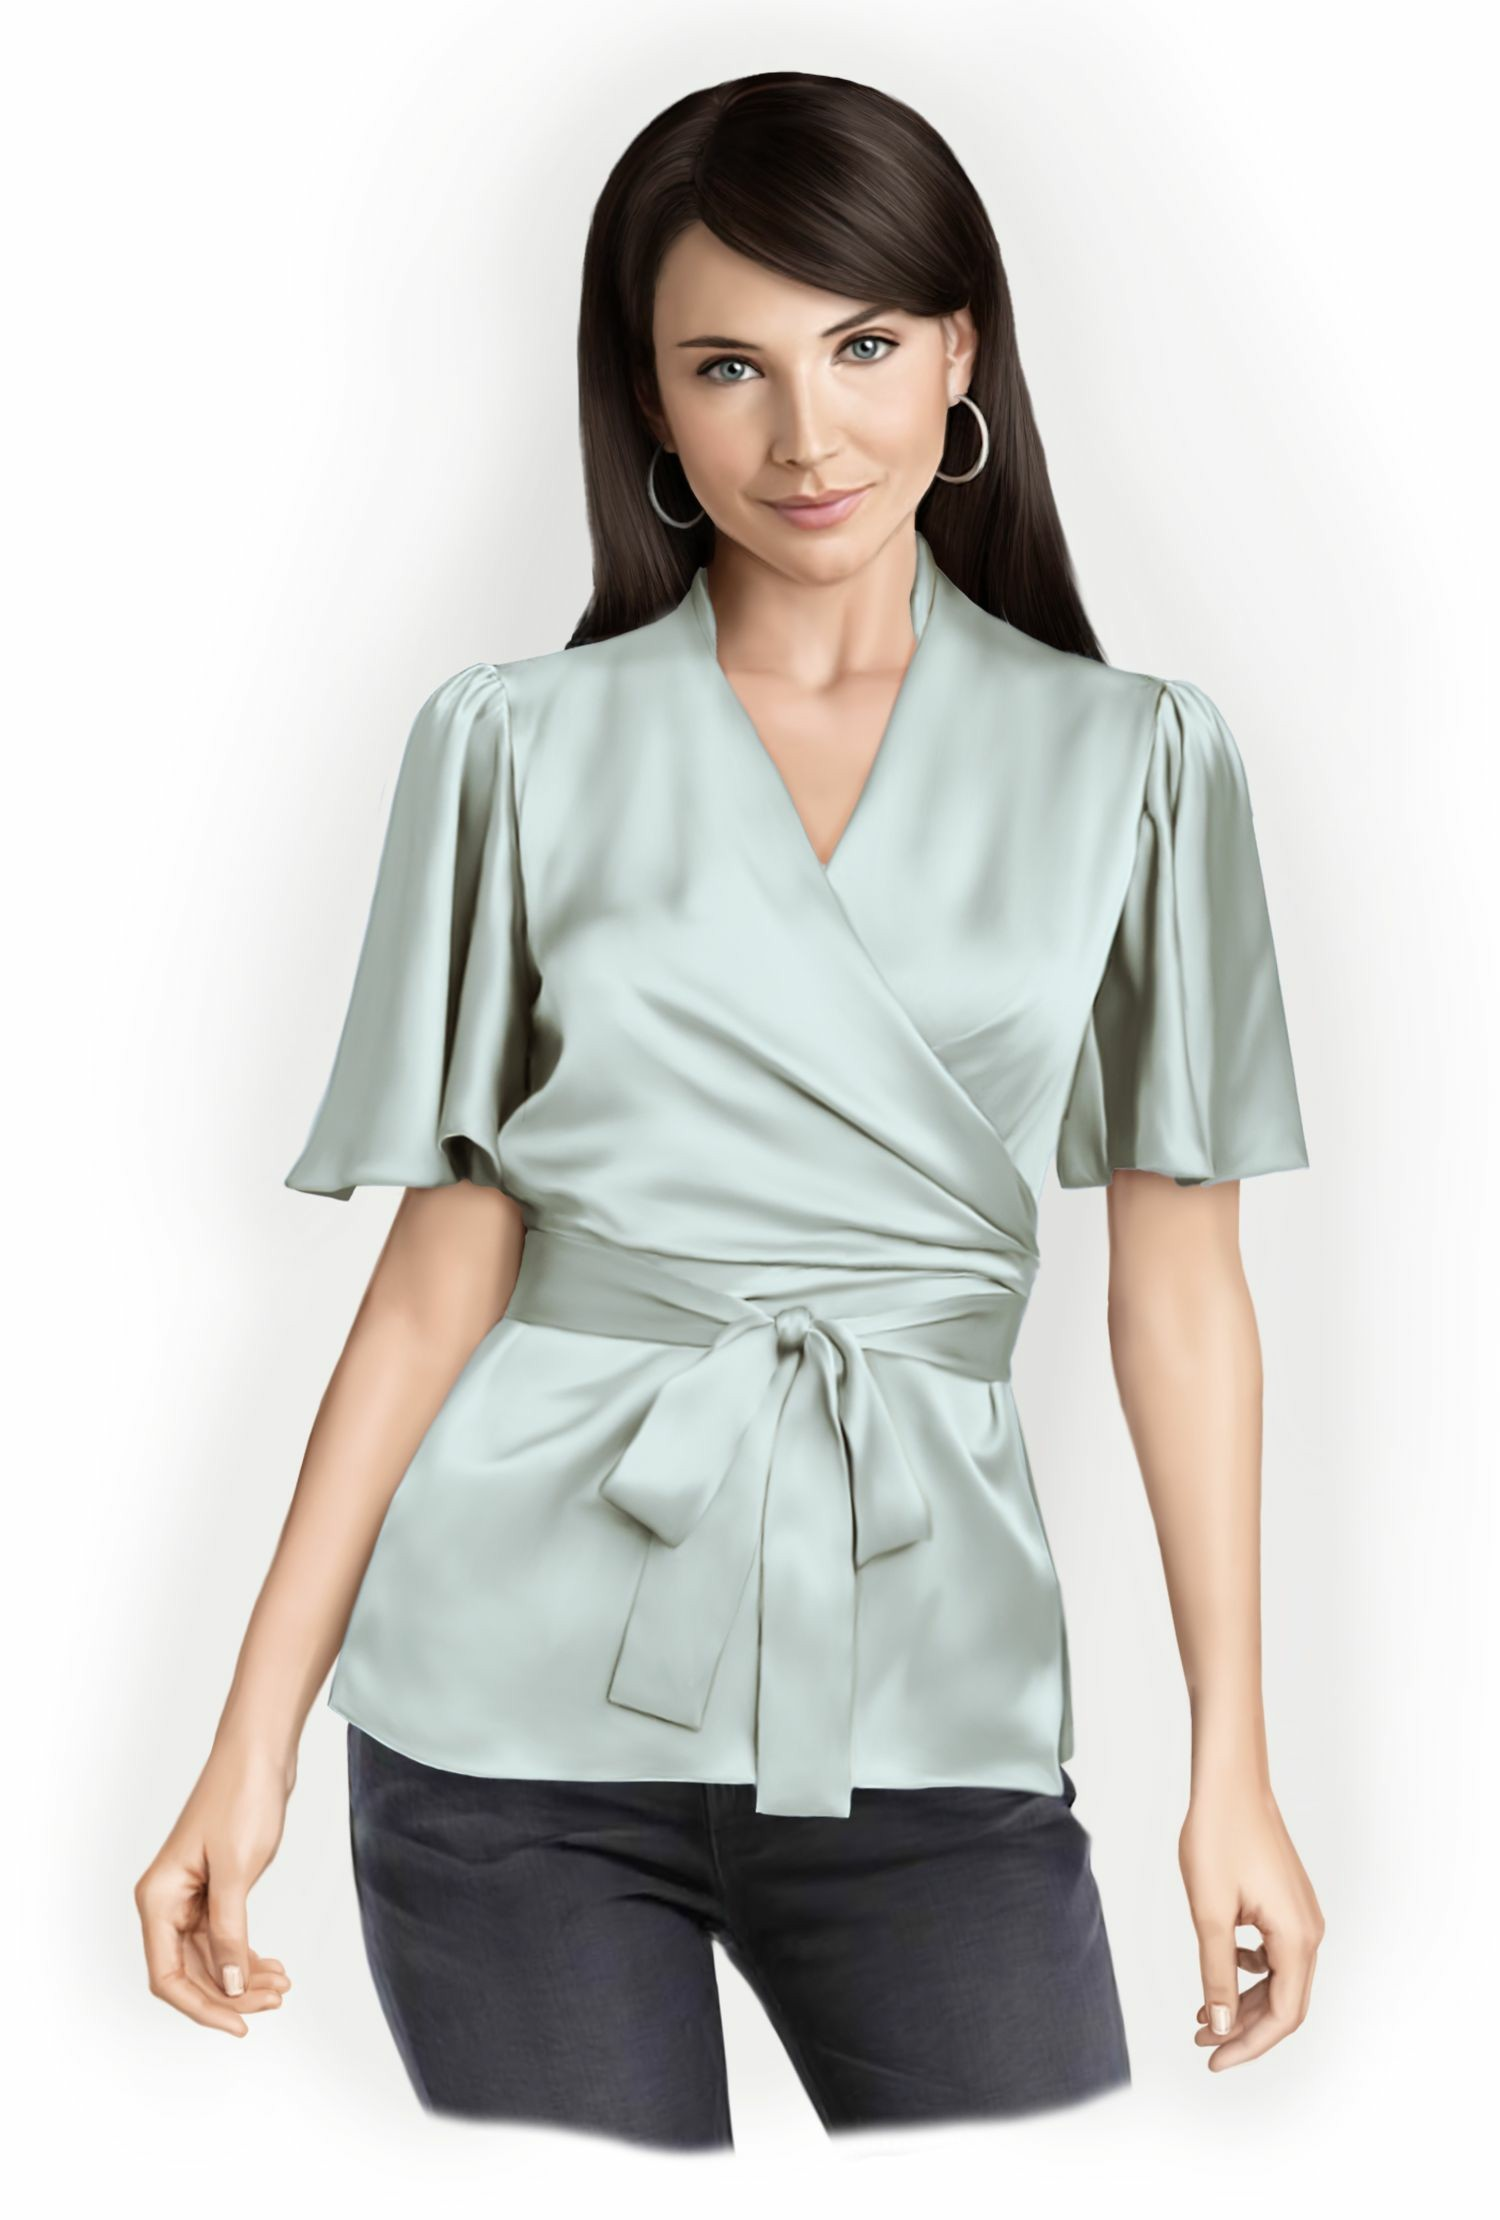 Blouse With Wrap - Sewing Pattern #5758. Made-to-measure sewing ...